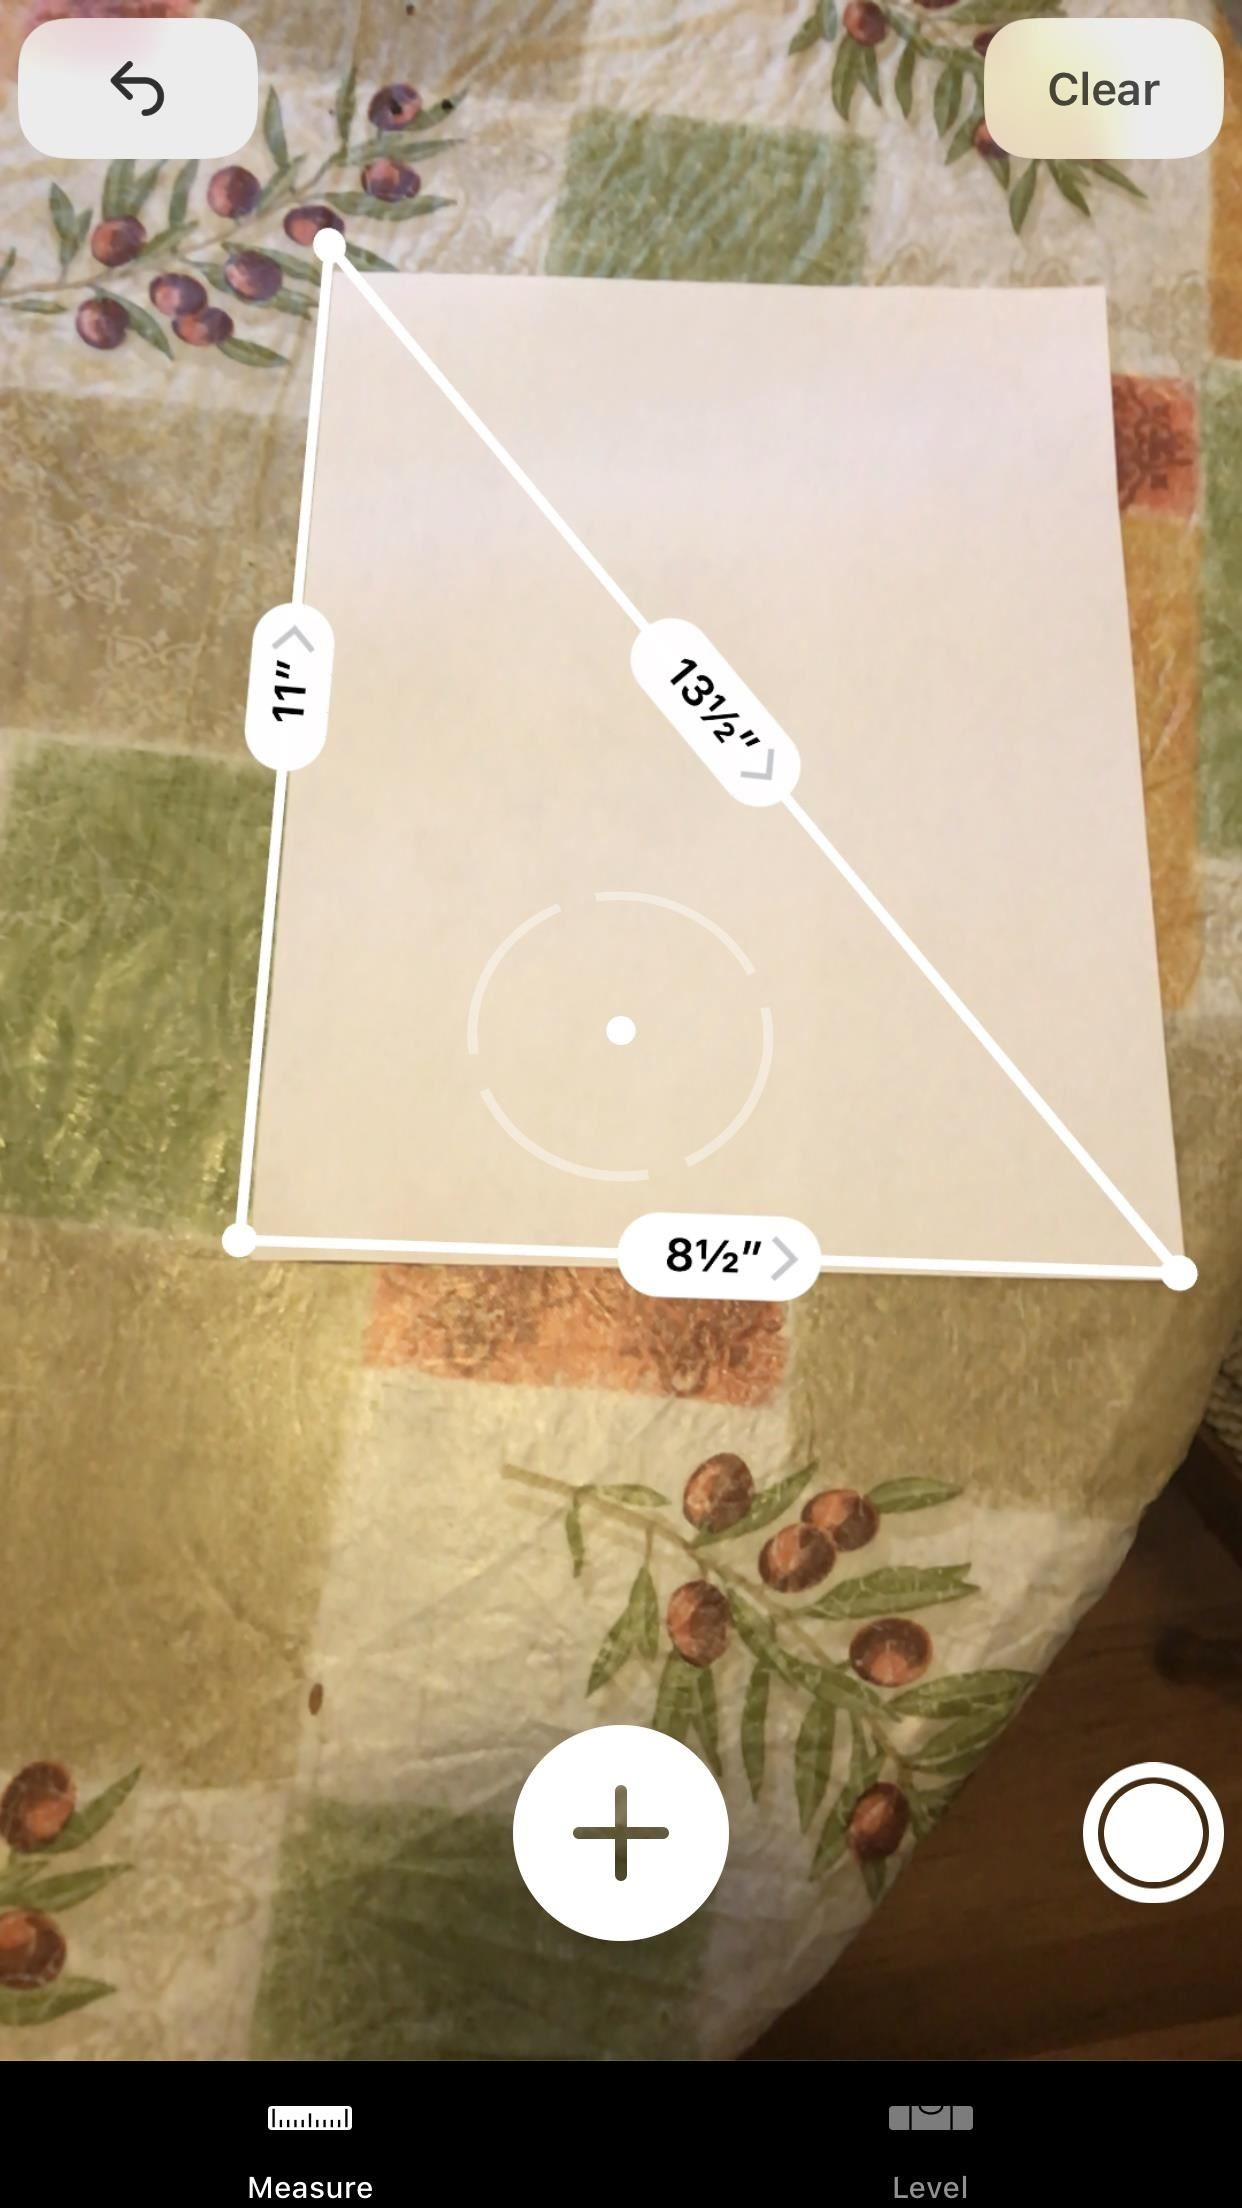 How to Measure Real Objects with Your iPhone in iOS 12